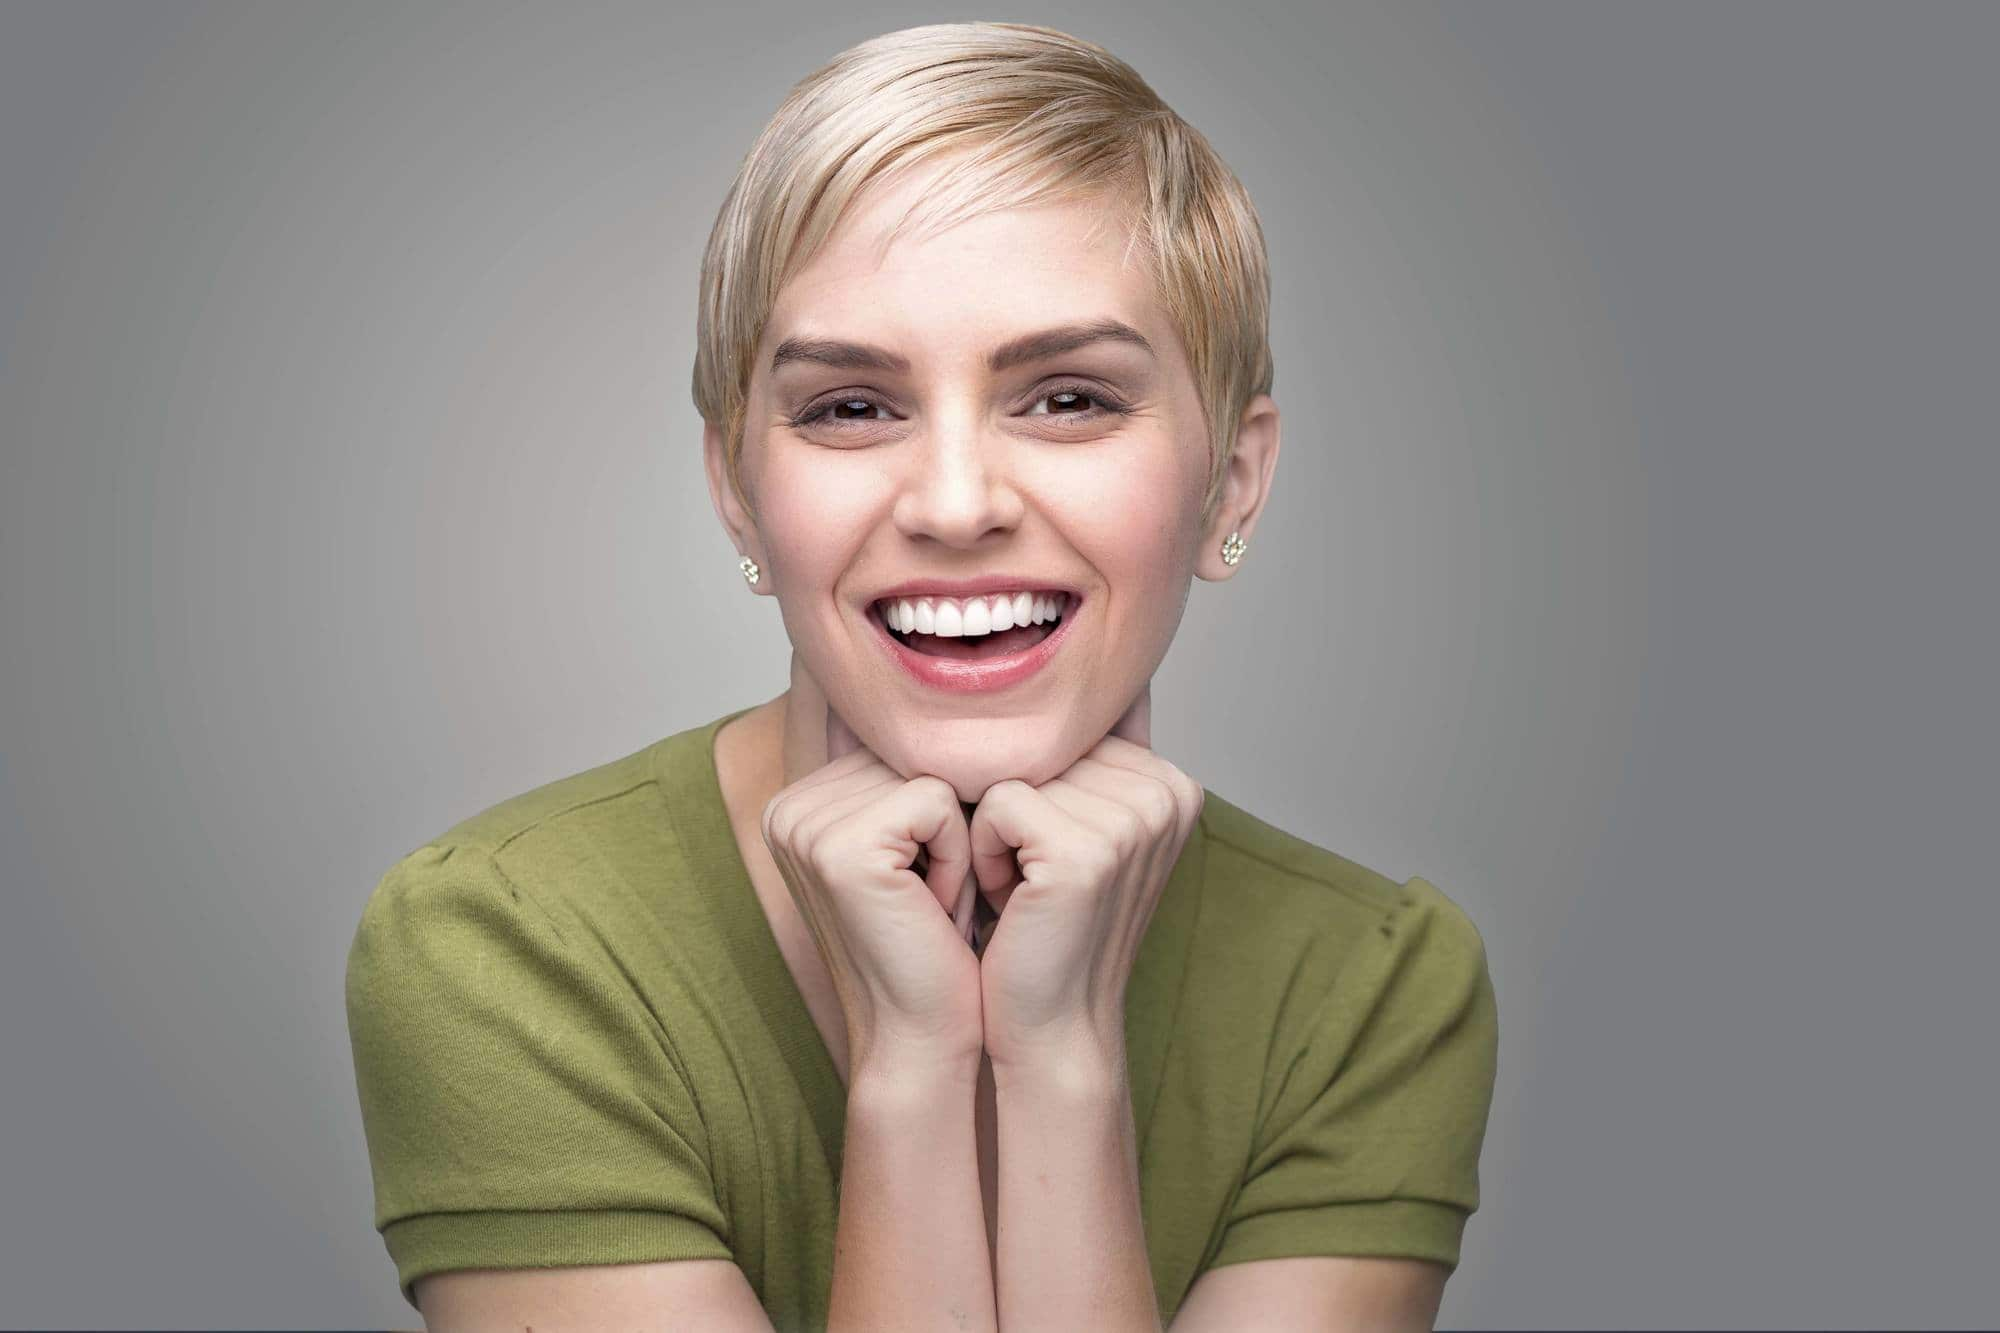 haircuts for round faces sleek pixie